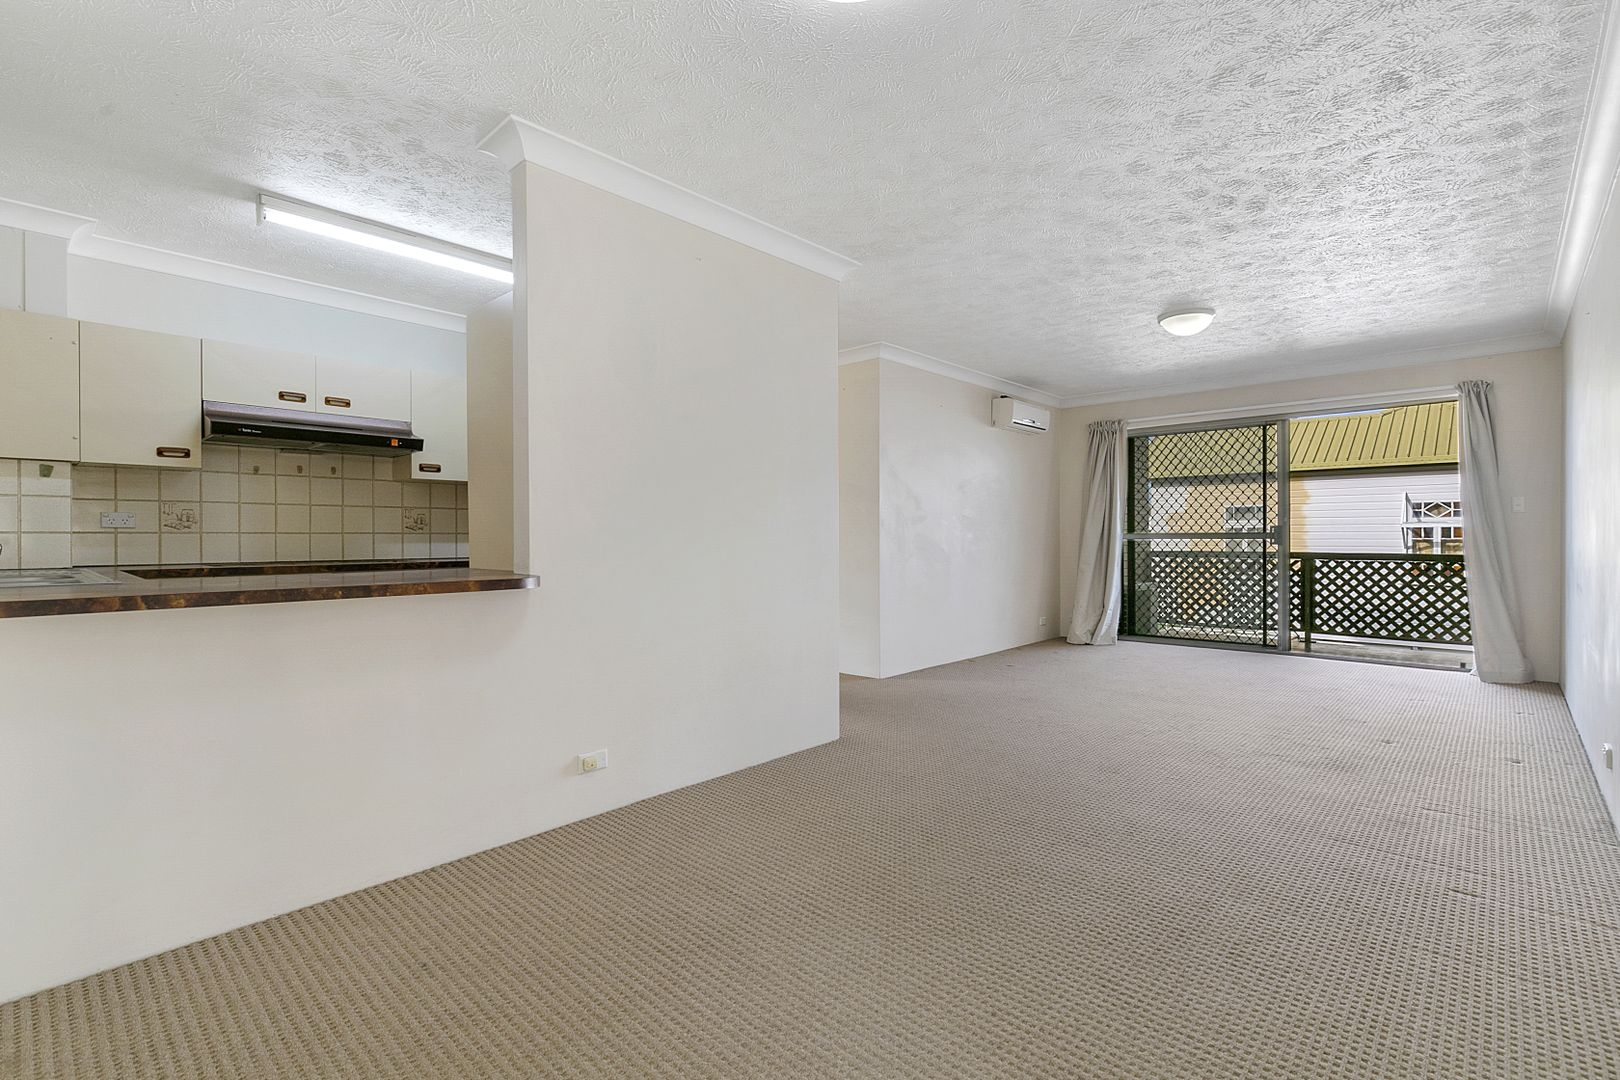 2/32 Moore Street, Morningside QLD 4170, Image 1